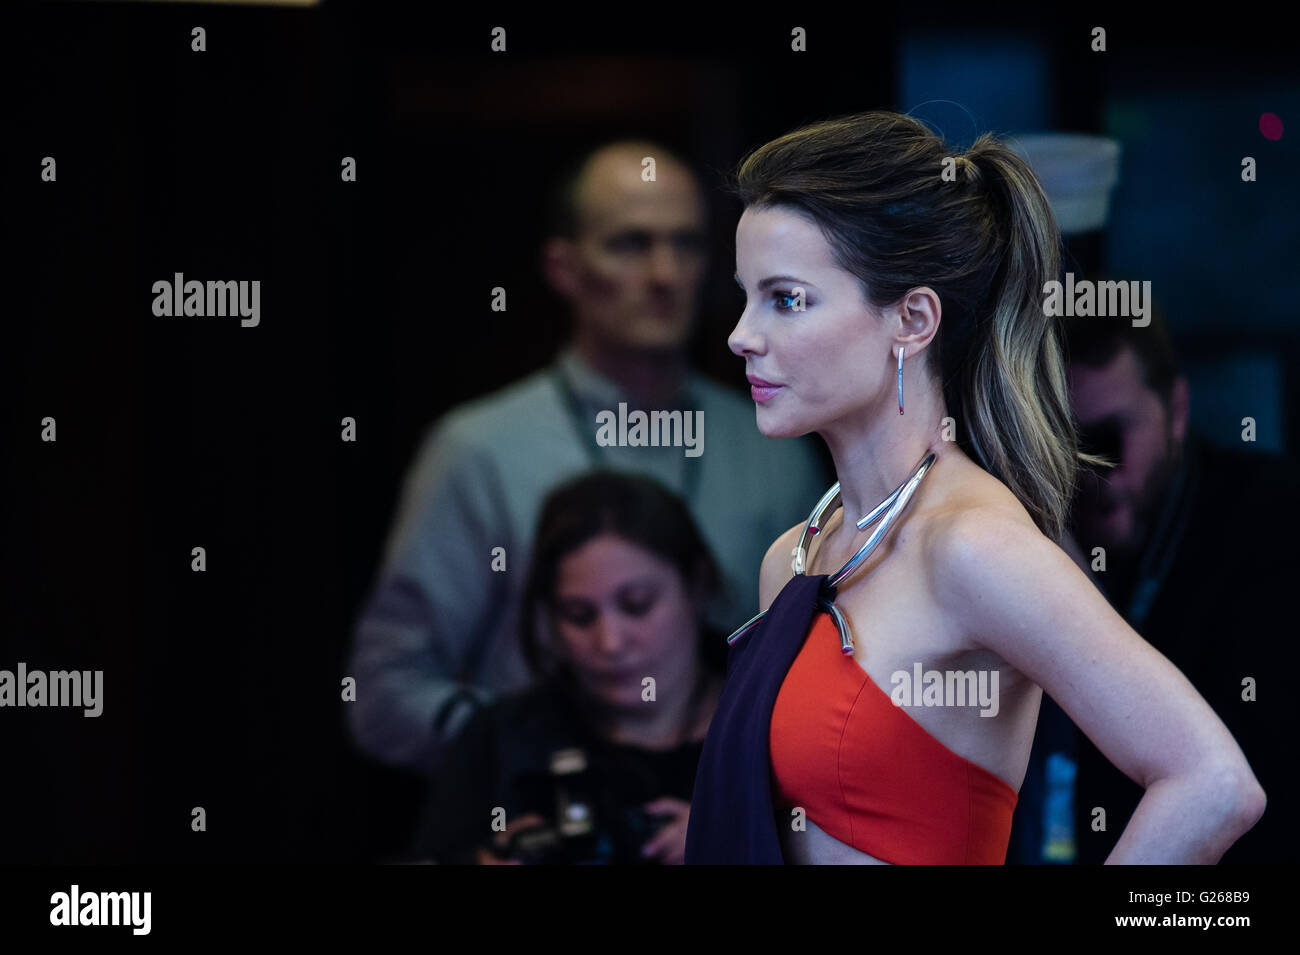 London, UK. 24th May 2016. Kate Beckinsale attends the UK premiere of 'Love & Friendship' in Curzon - Stock Image